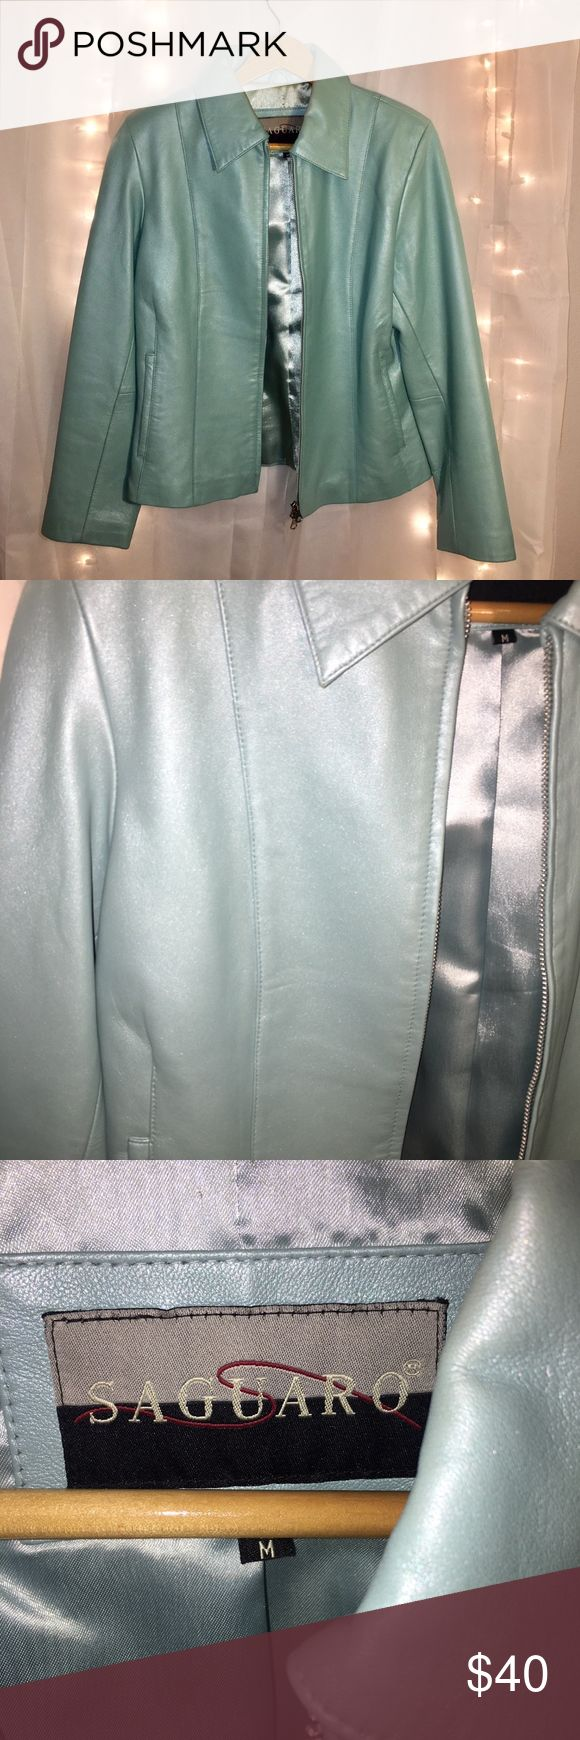 Genuine Leather Mint Jacket This genuine leather jacket is a beautiful mint color and it has a slight shimmer to it! Zips up and has a collar and pockets.   Worn a couple times, in perfect condition! Saguaro Jackets & Coats Blazers